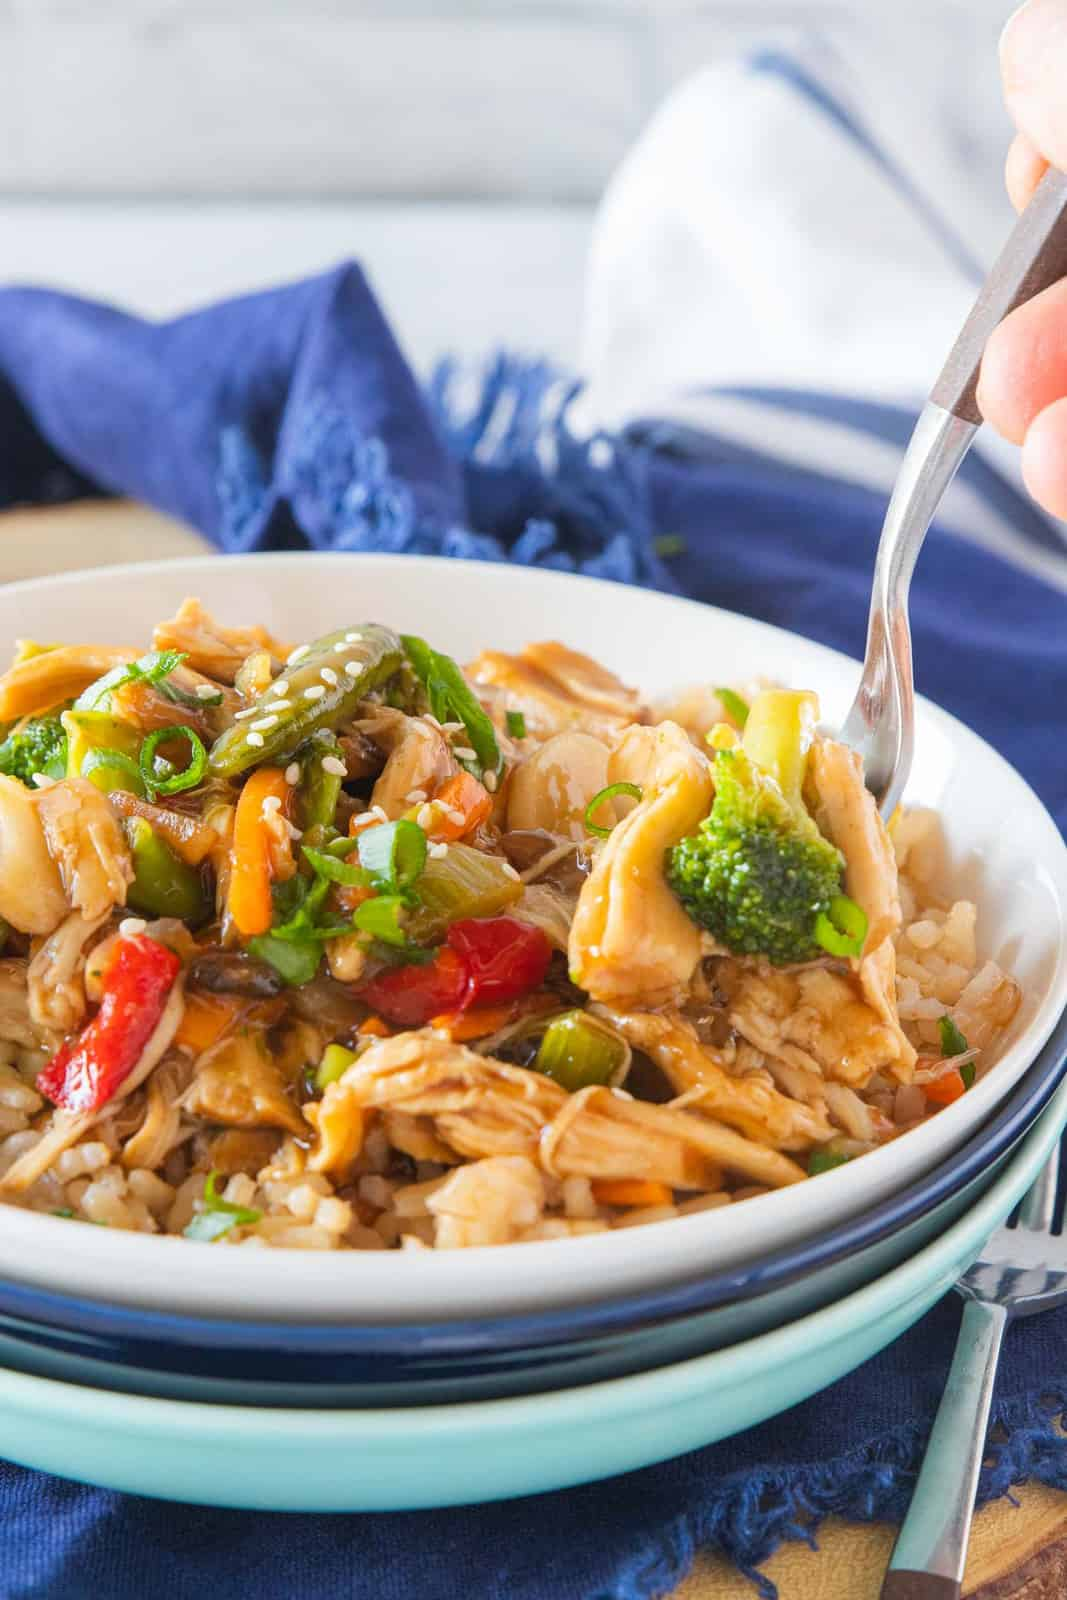 A fork scooping a serving of chicken stir fry.